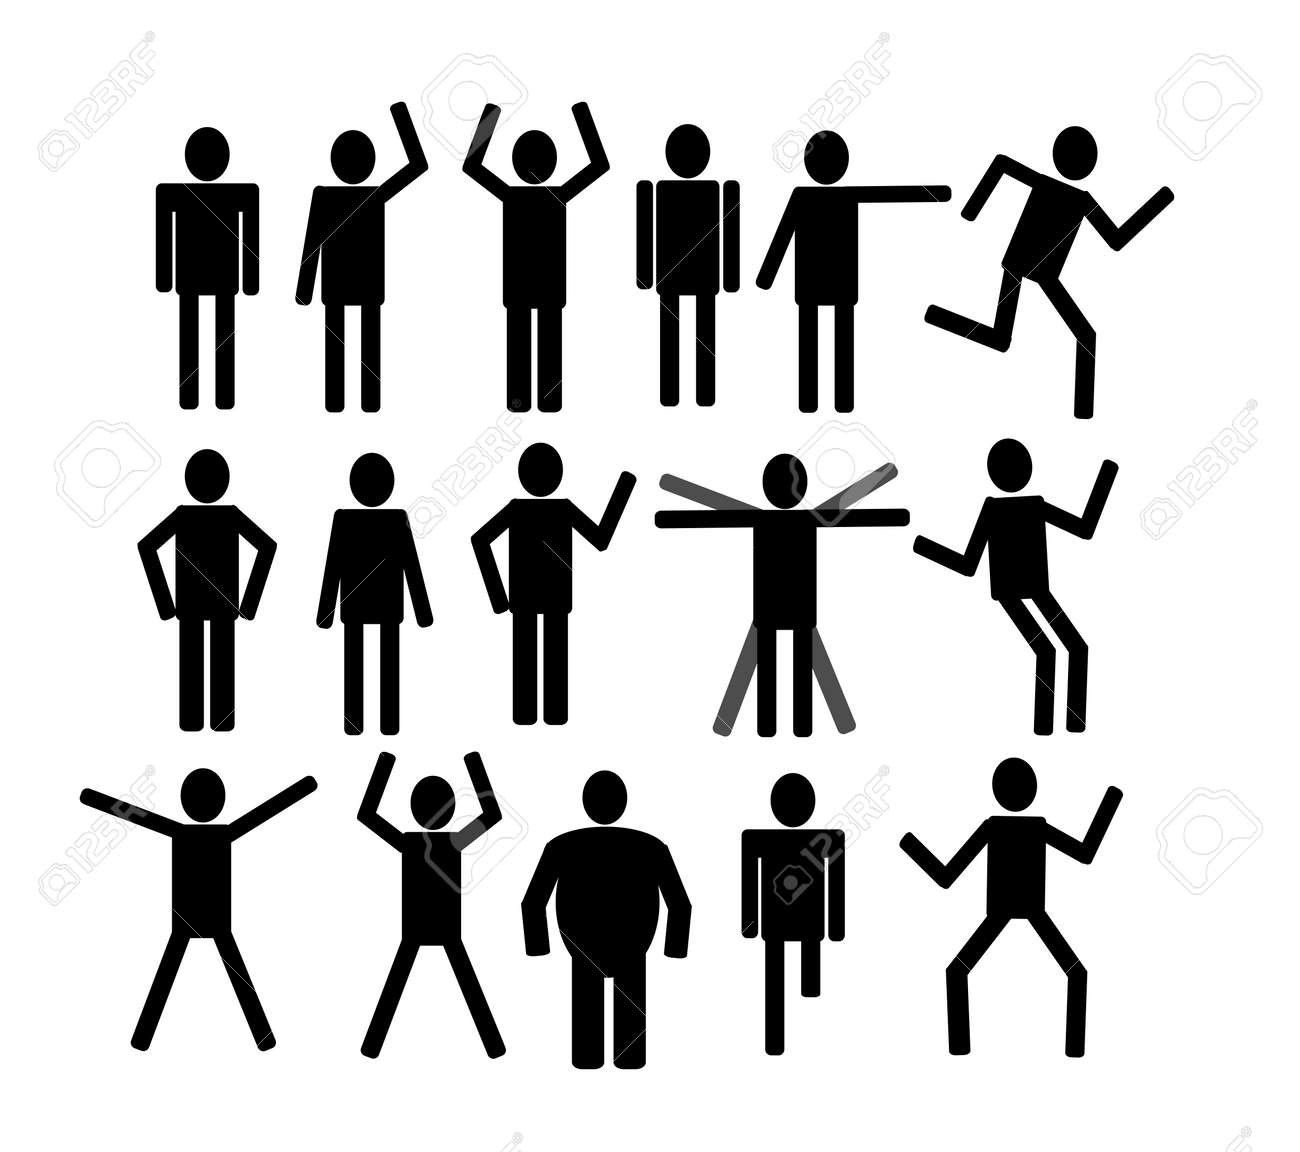 Pictograms people Man Icon Sign Symbol Pictogram Stock Vector - 25157621